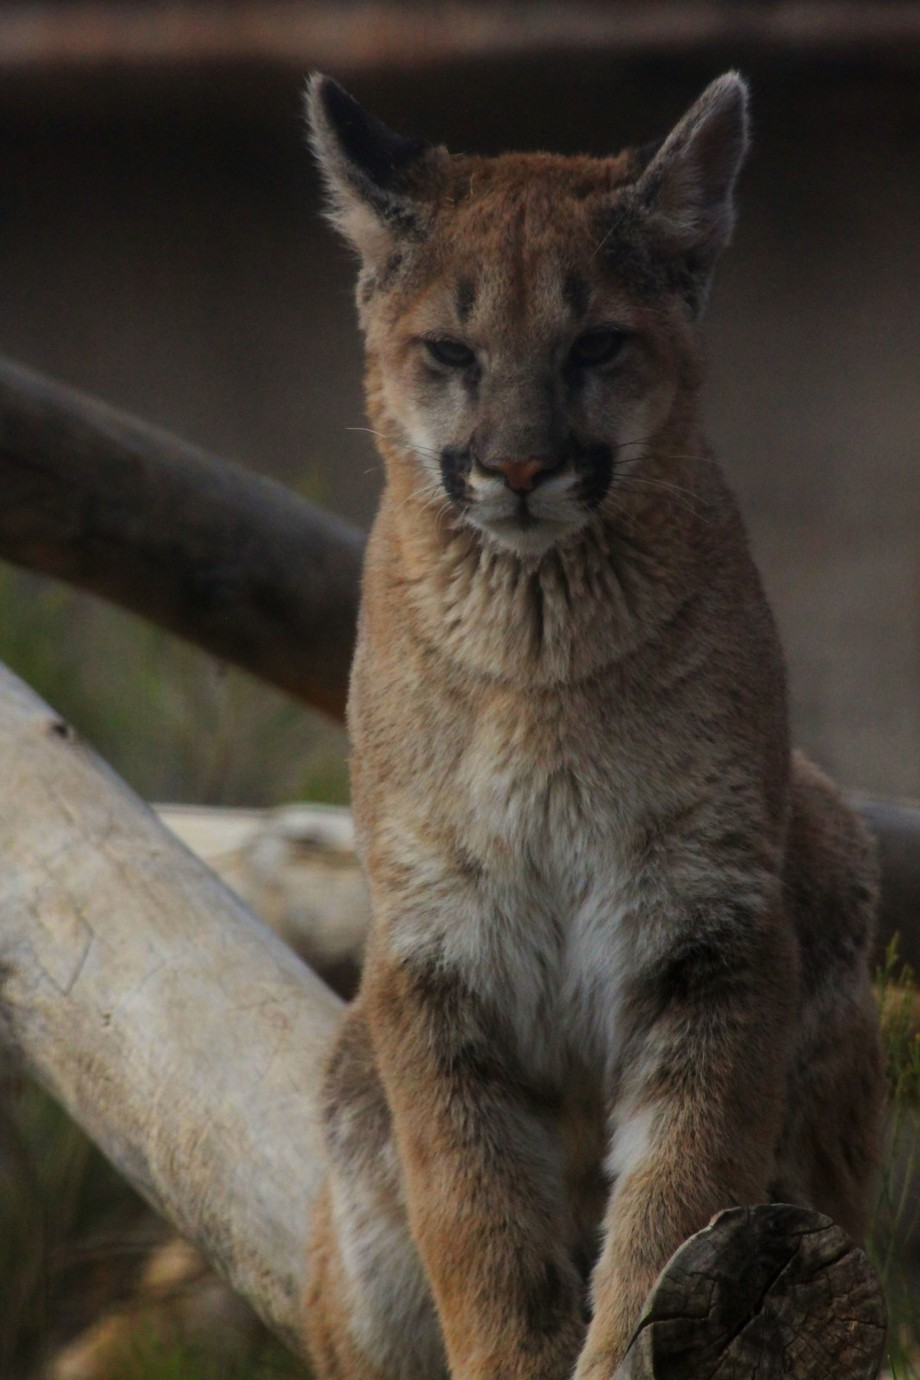 Here is a young Puma or as some call it mountain lion or cougar. Depends on where on is from.